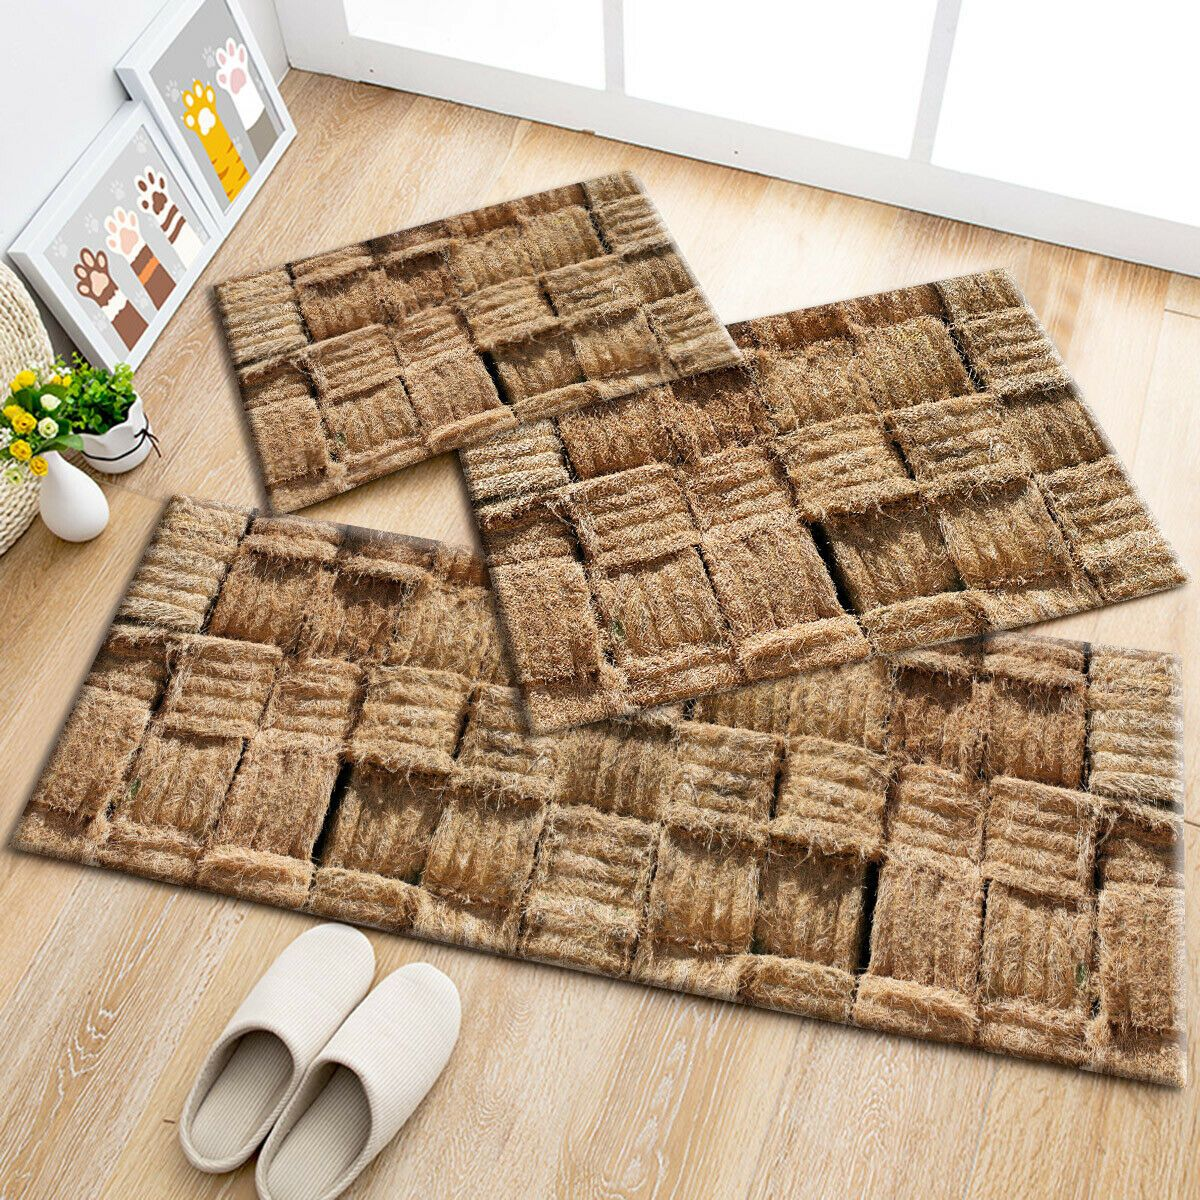 Autumn Rustic Straw Pattern Area Rugs Kitchen Bedroom Rug Living Room Floor Mat 6 99 Fall Rugs Ideas Living Room Flooring Rugs In Living Room Bedroom Rug